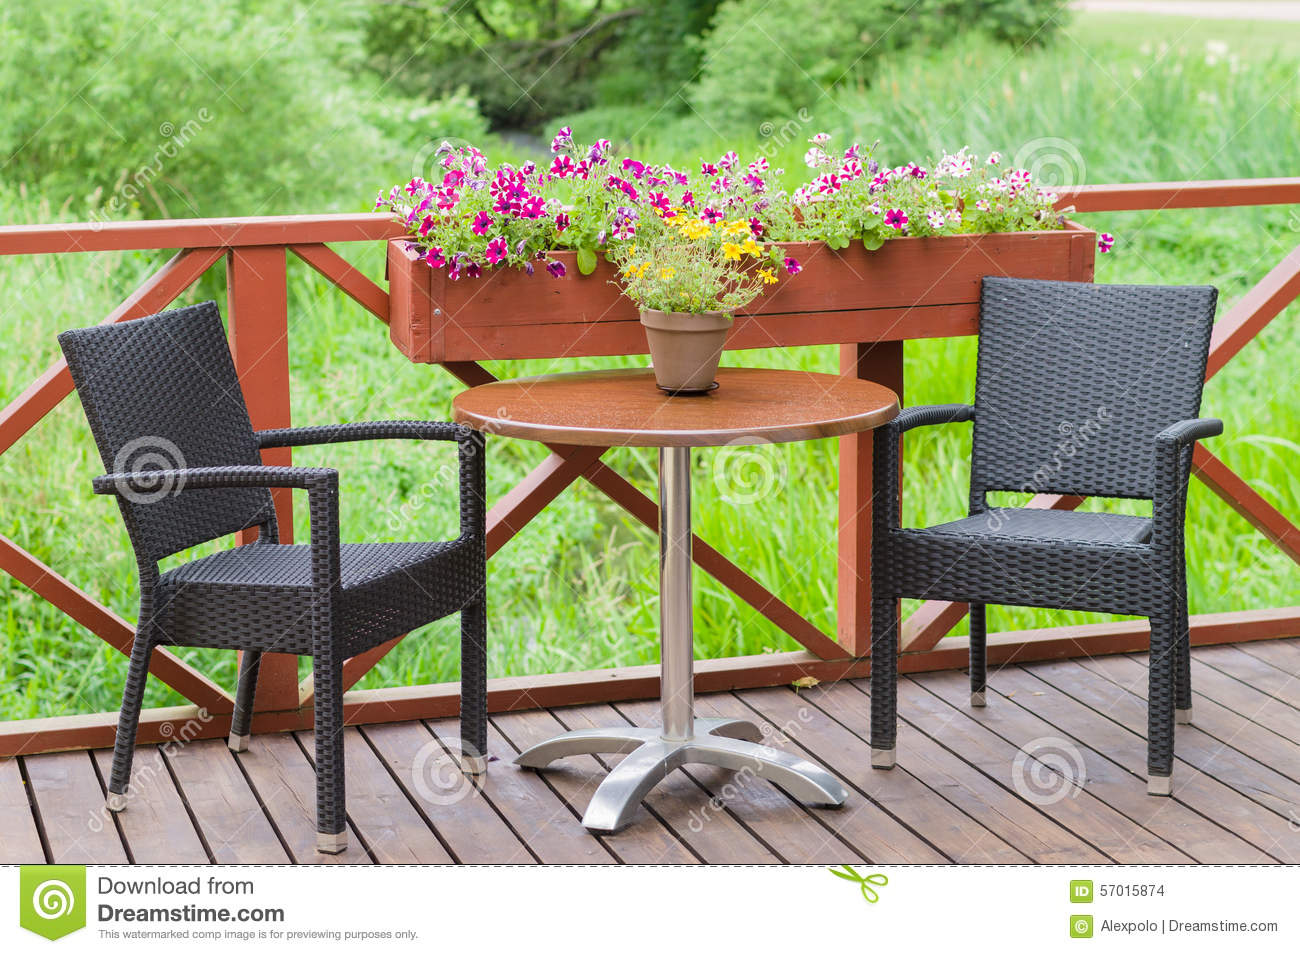 Outdoor terrace cafe table with two chairs stock photo for Terrace cafe opentable